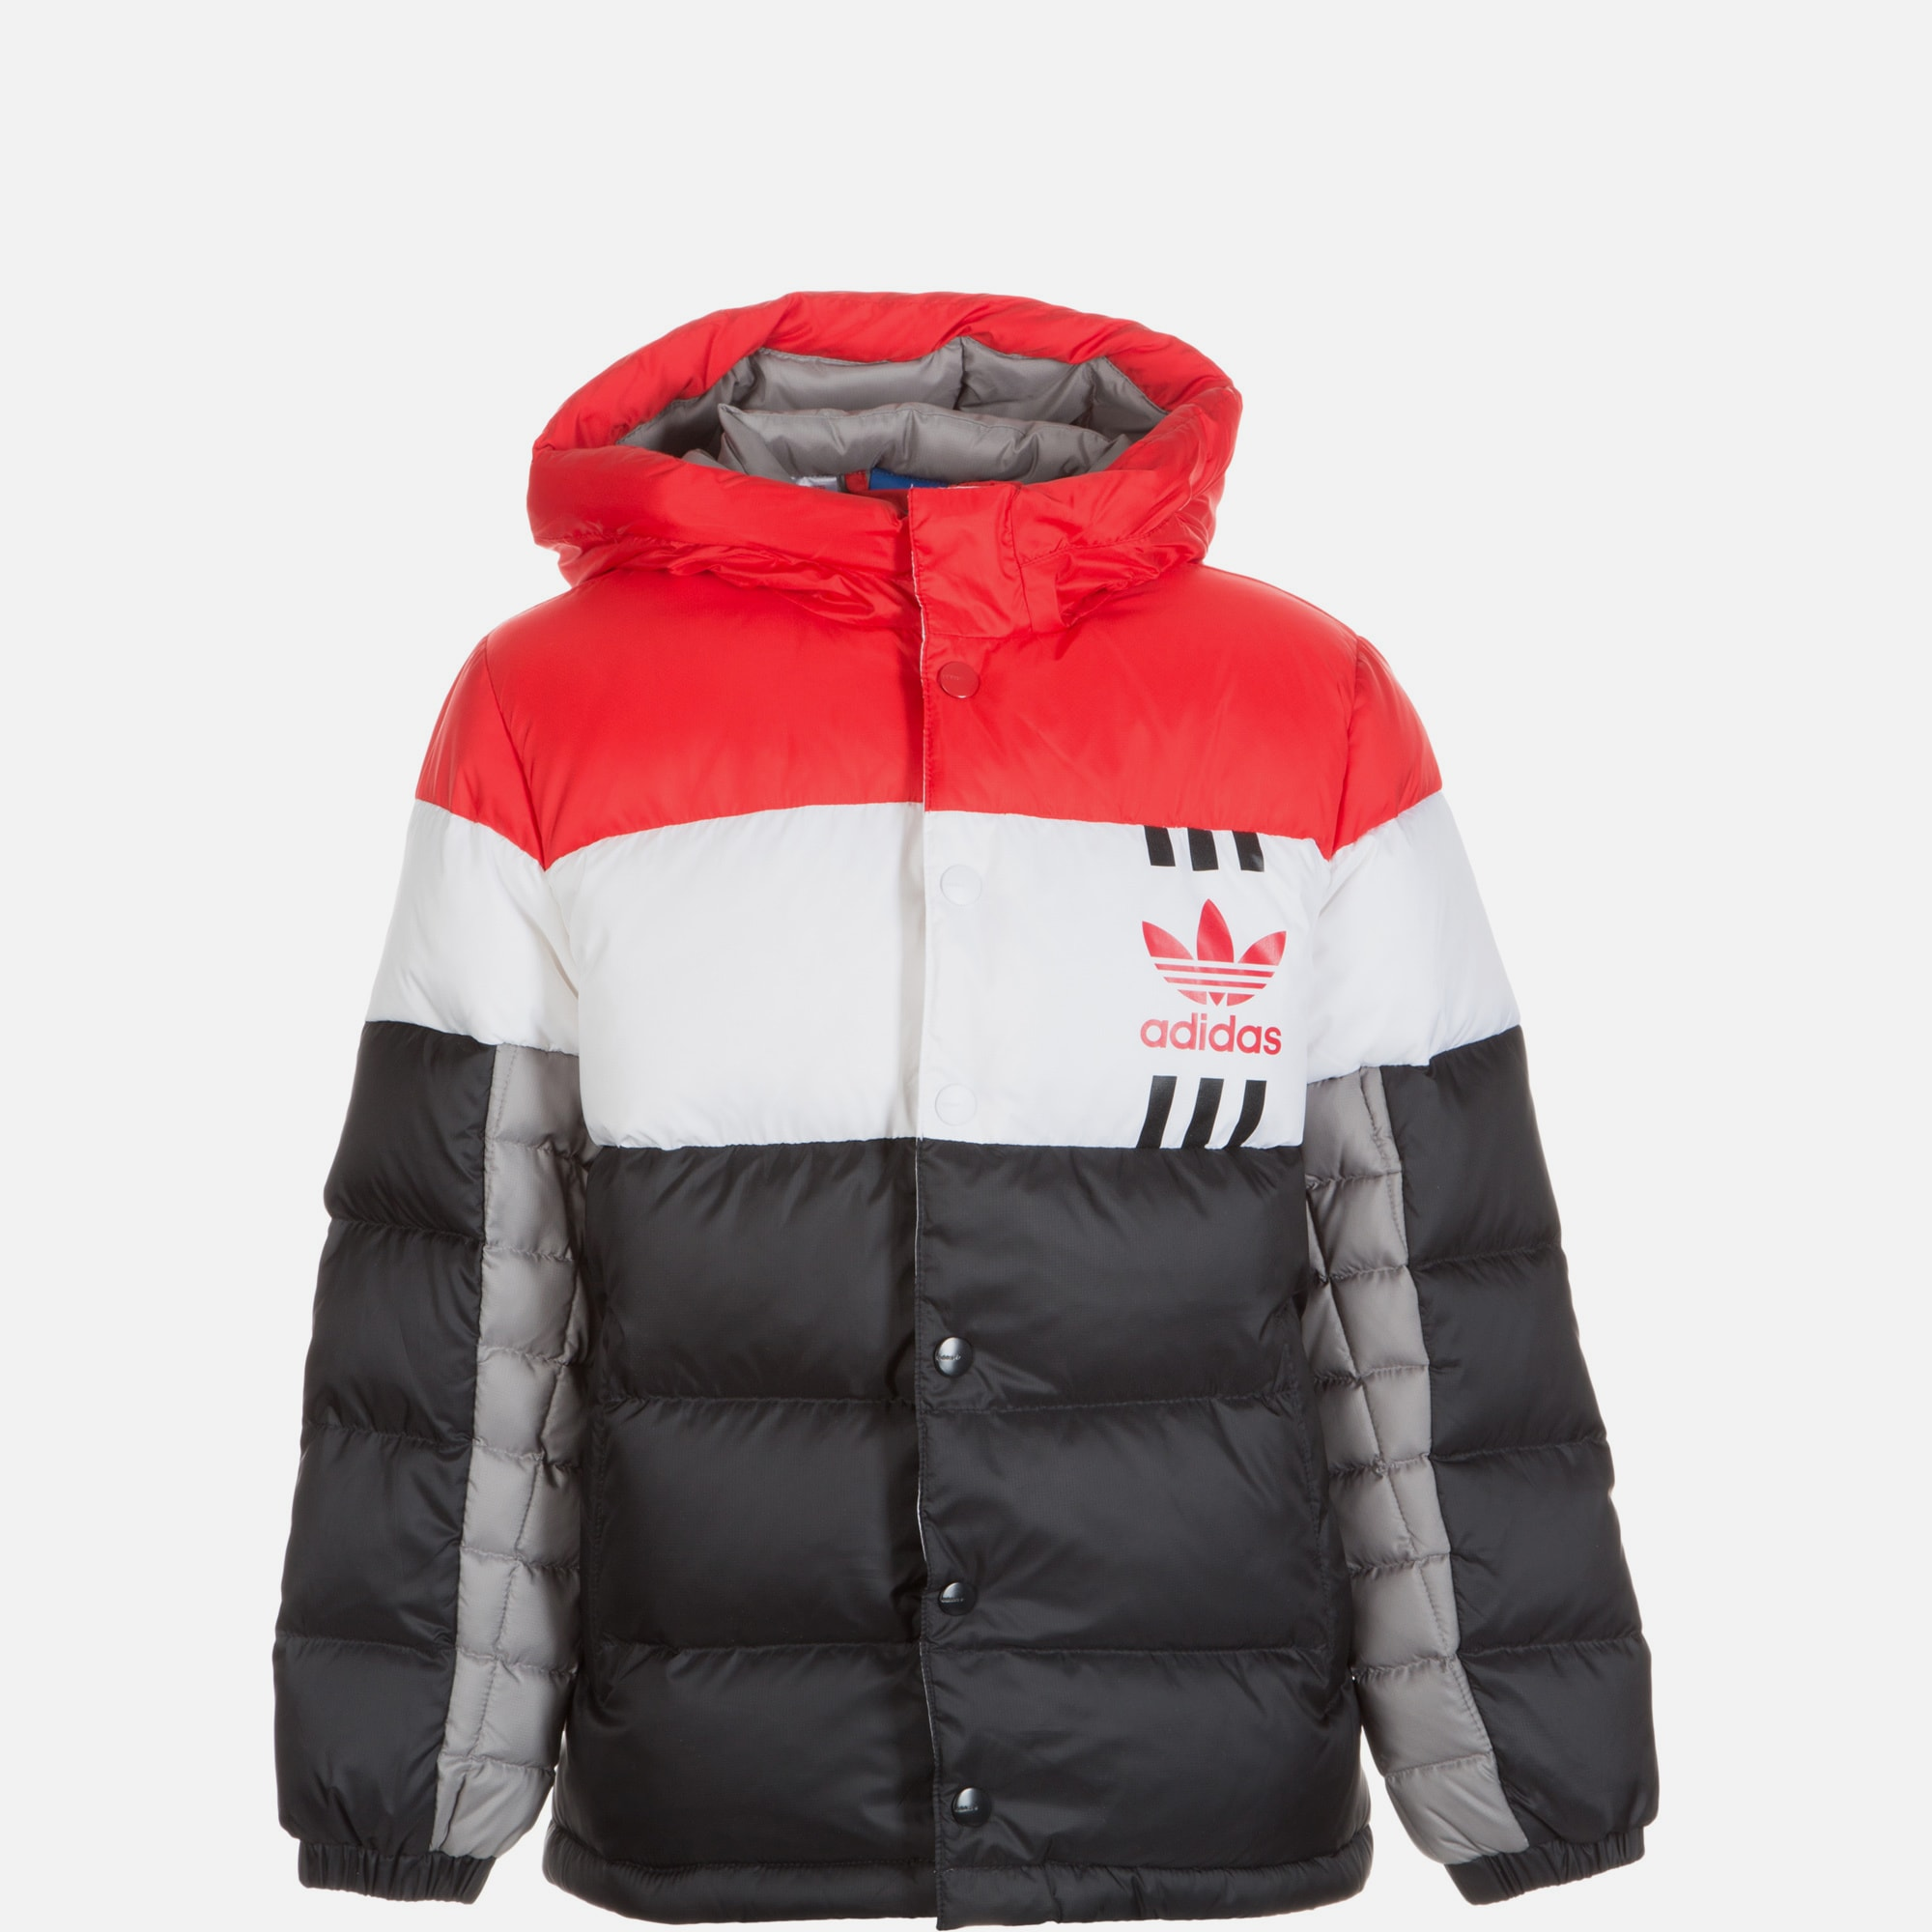 adidas originals id 96 winterjacke in rot about you. Black Bedroom Furniture Sets. Home Design Ideas